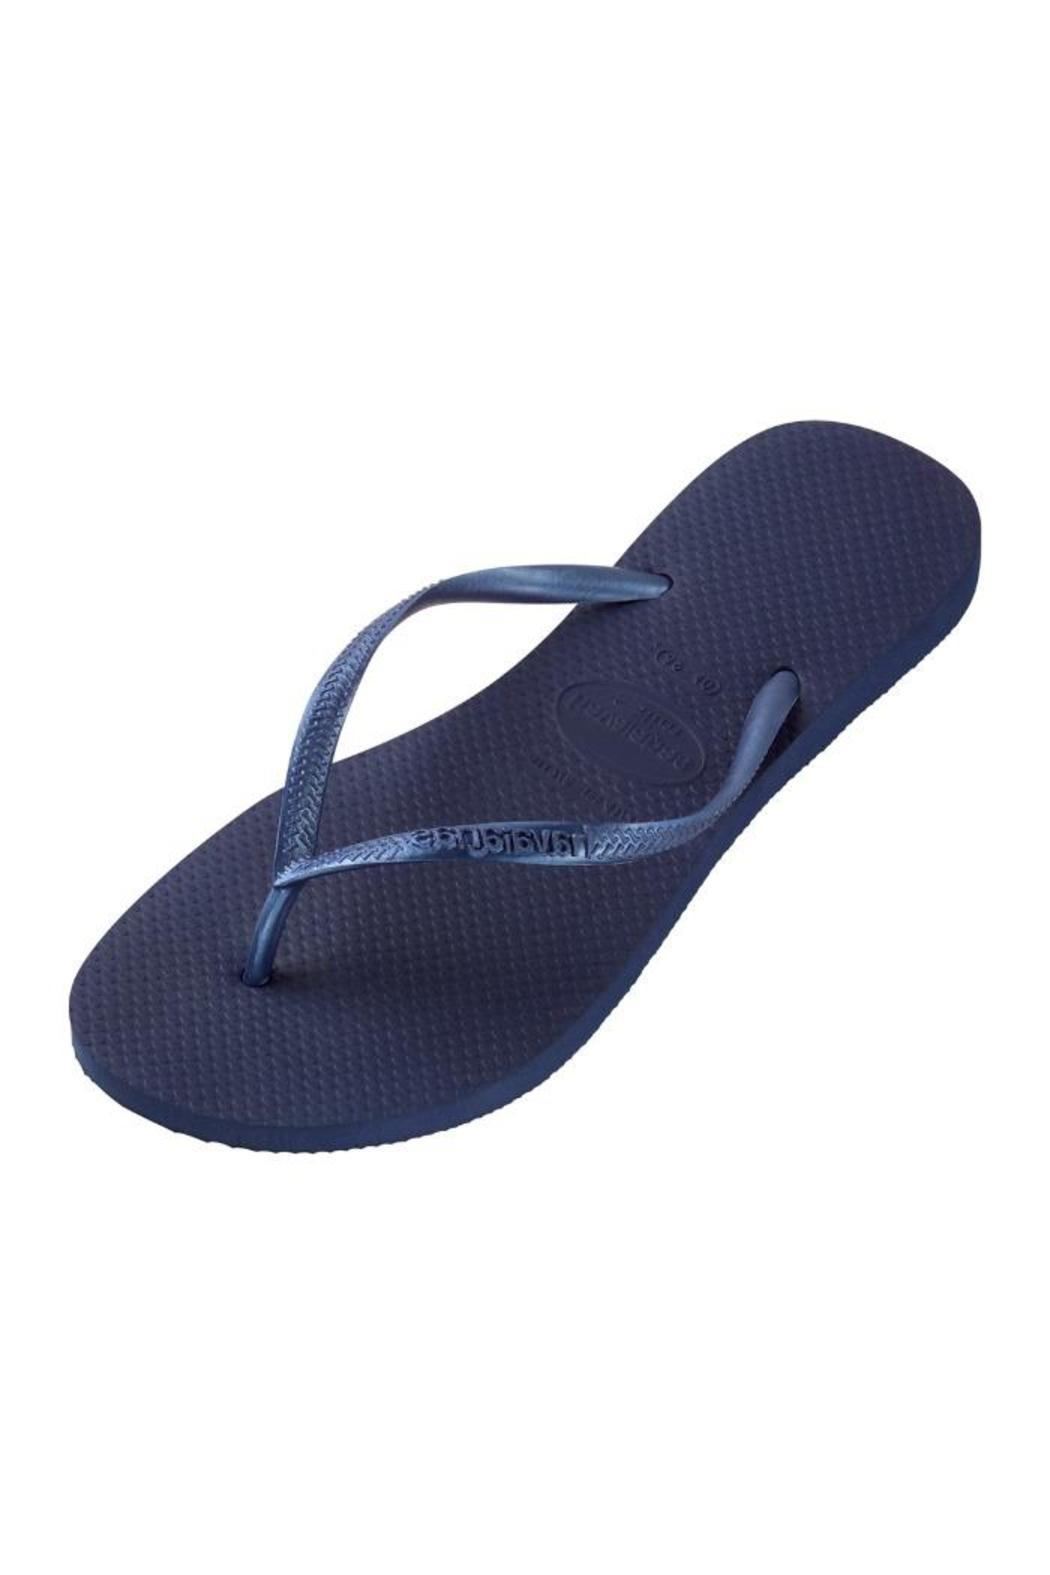 d327b1250767cc Havaianas Slim Sandal from Tennessee by Lori s Family Footwear ...